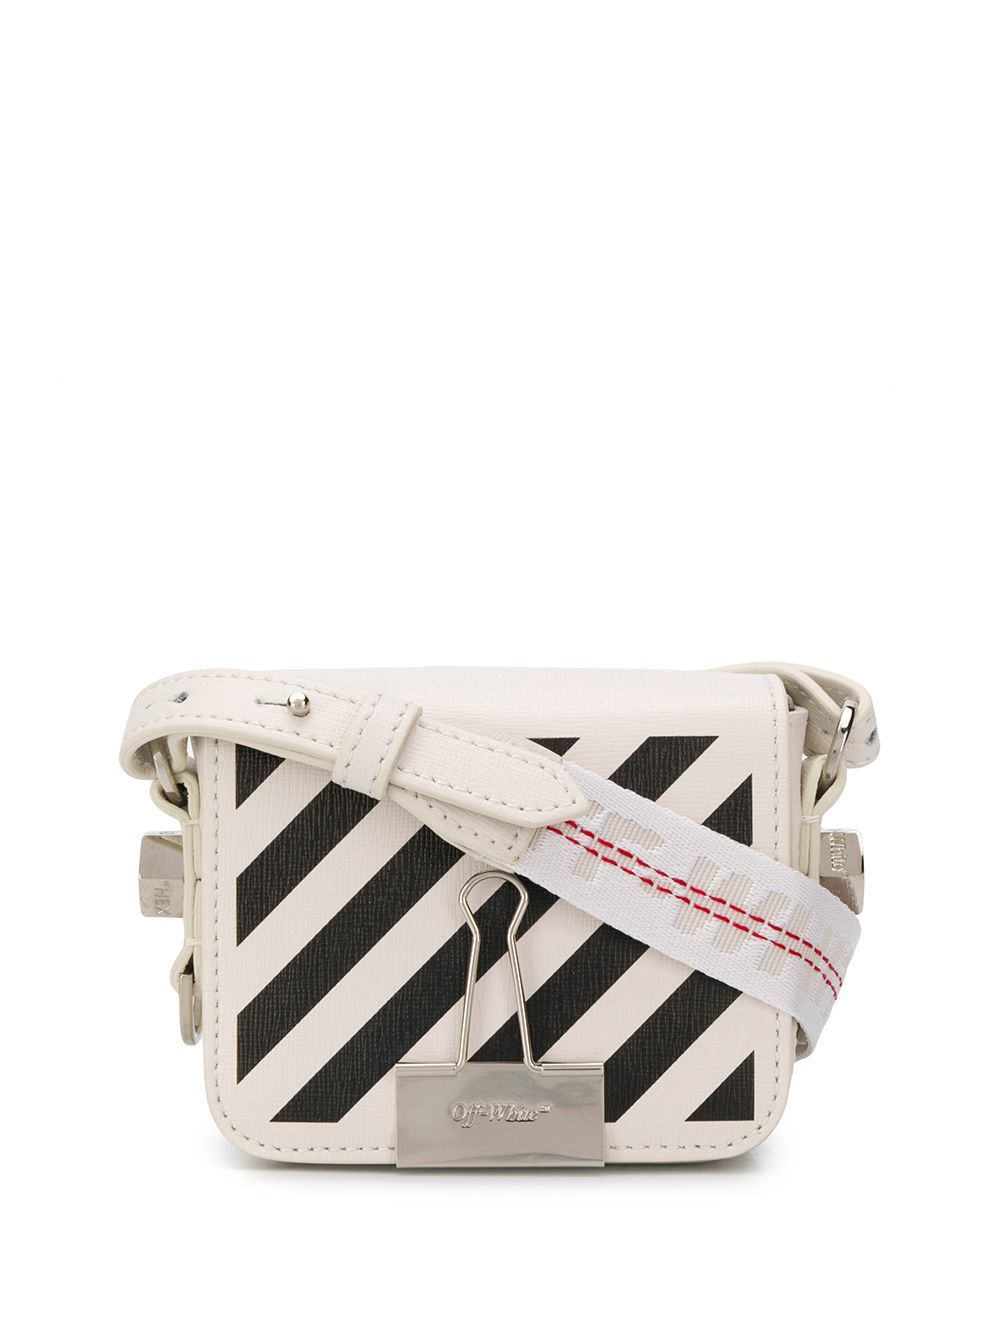 OFF-WHITE Diag mini crossbody bag